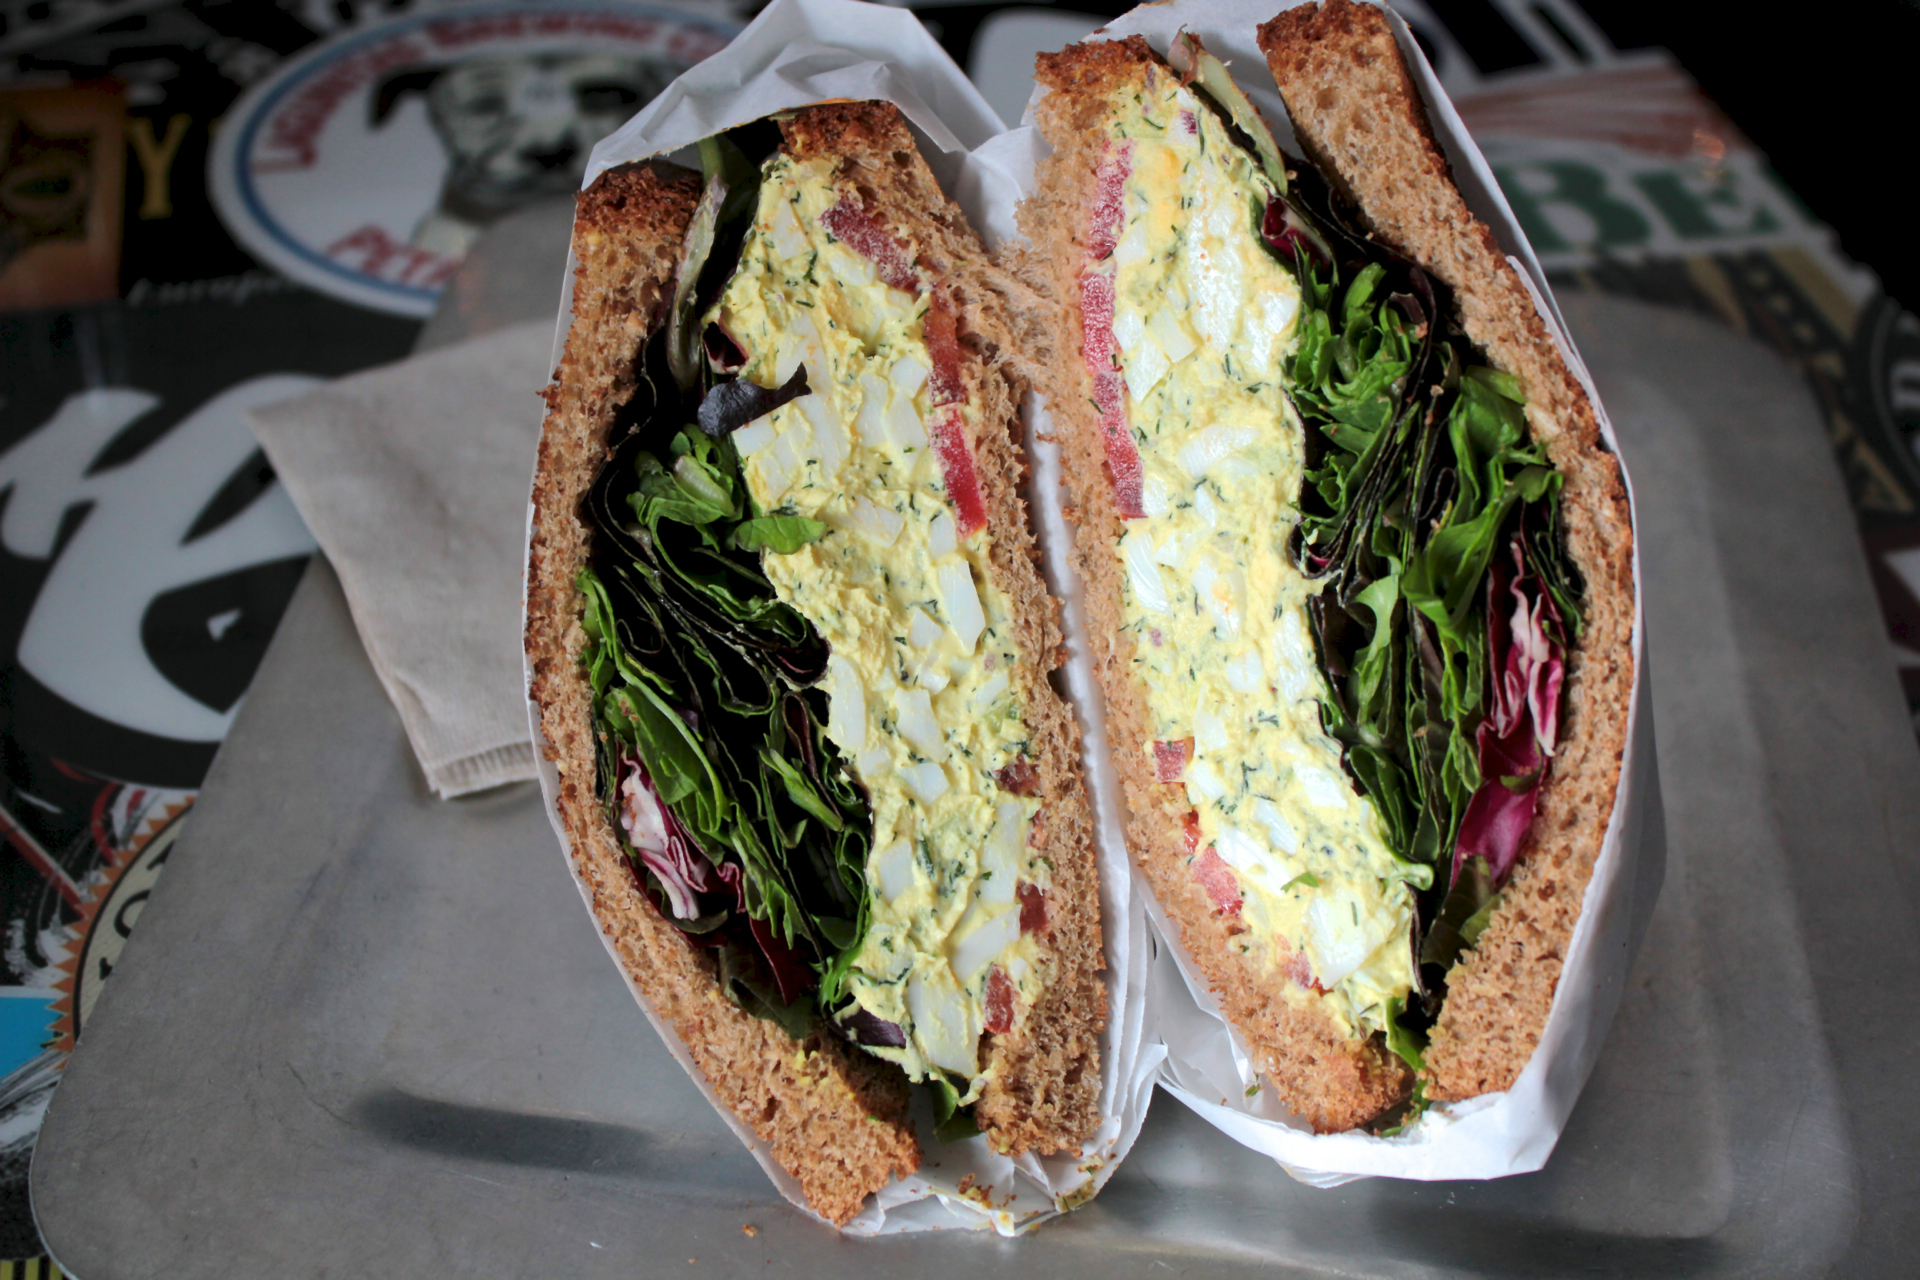 The Humpty Dumpty sandwich features house-made egg salad, red onions, dill, tomatoes and mixed greens.